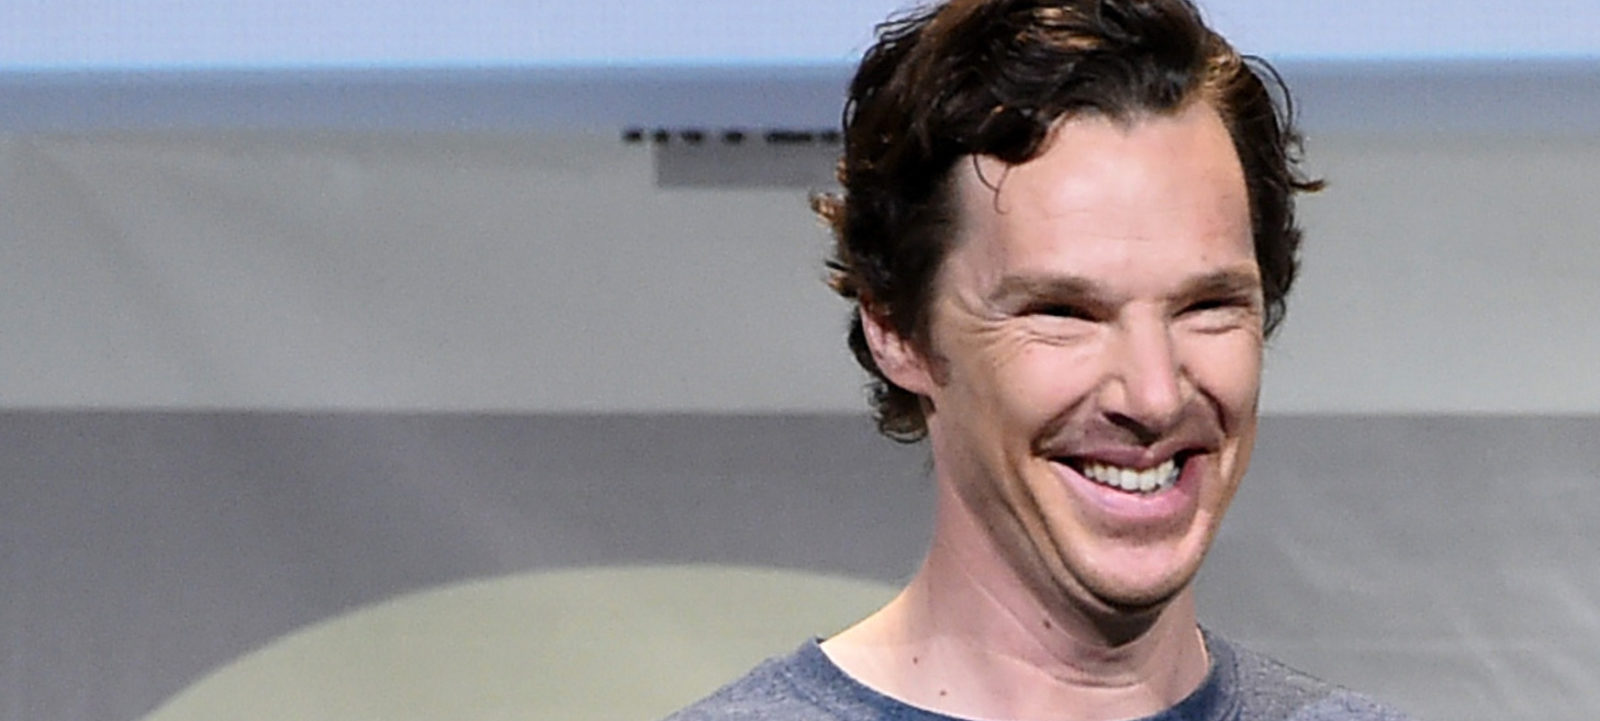 Actor Benedict Cumberbatch attends the Marvel Studios presentation during Comic-Con International 2016 at San Diego Convention Center on July 23, 2016 in San Diego, California.